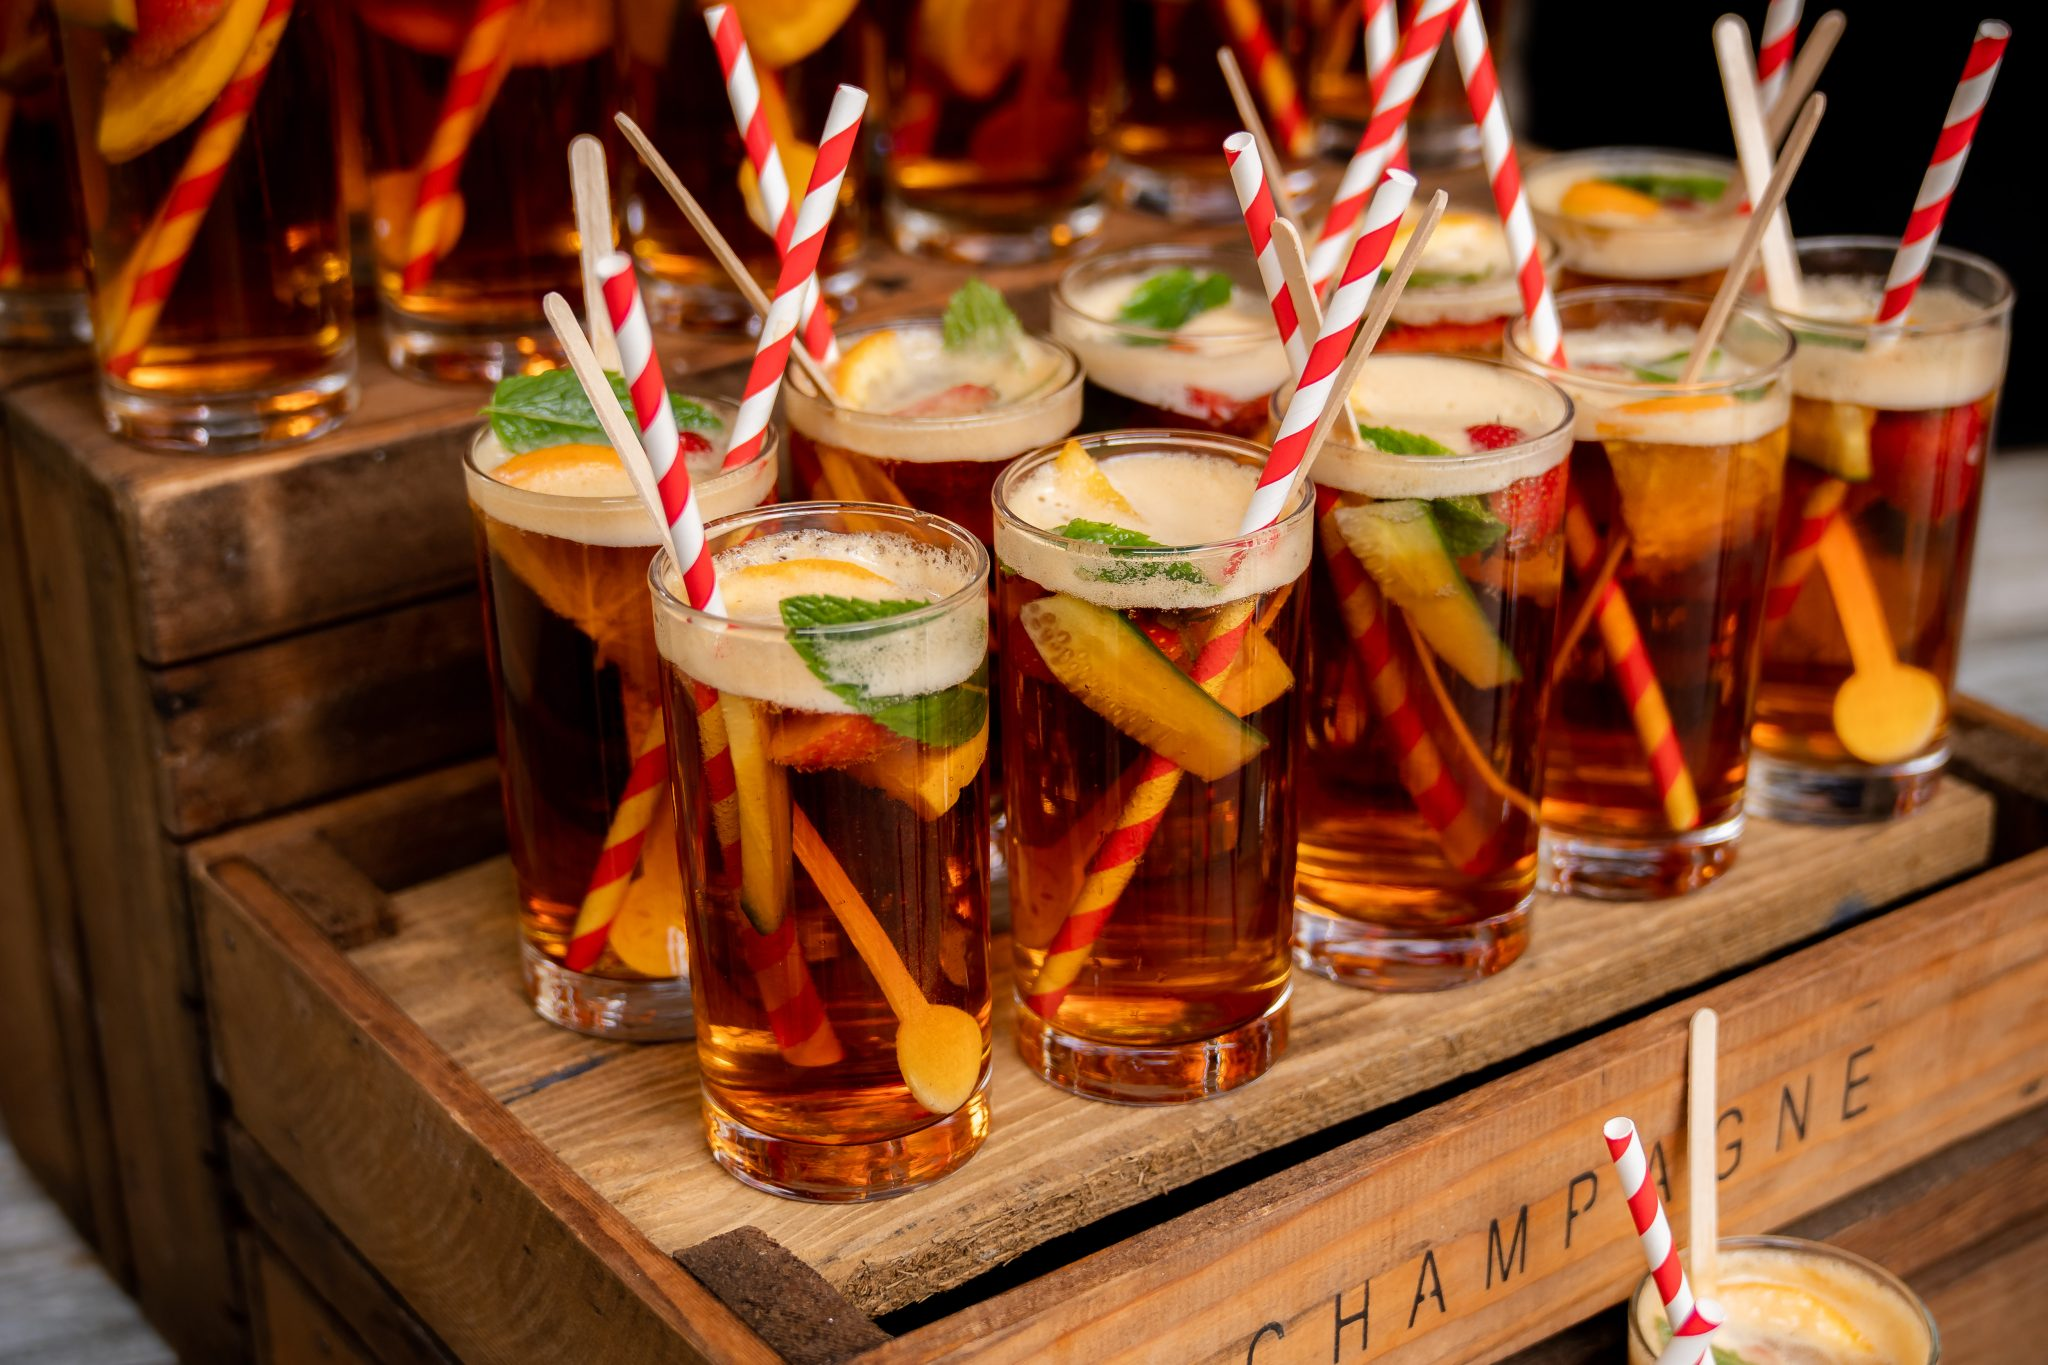 Wedding refreshments, wedding drinks, wedding food, wedding catering